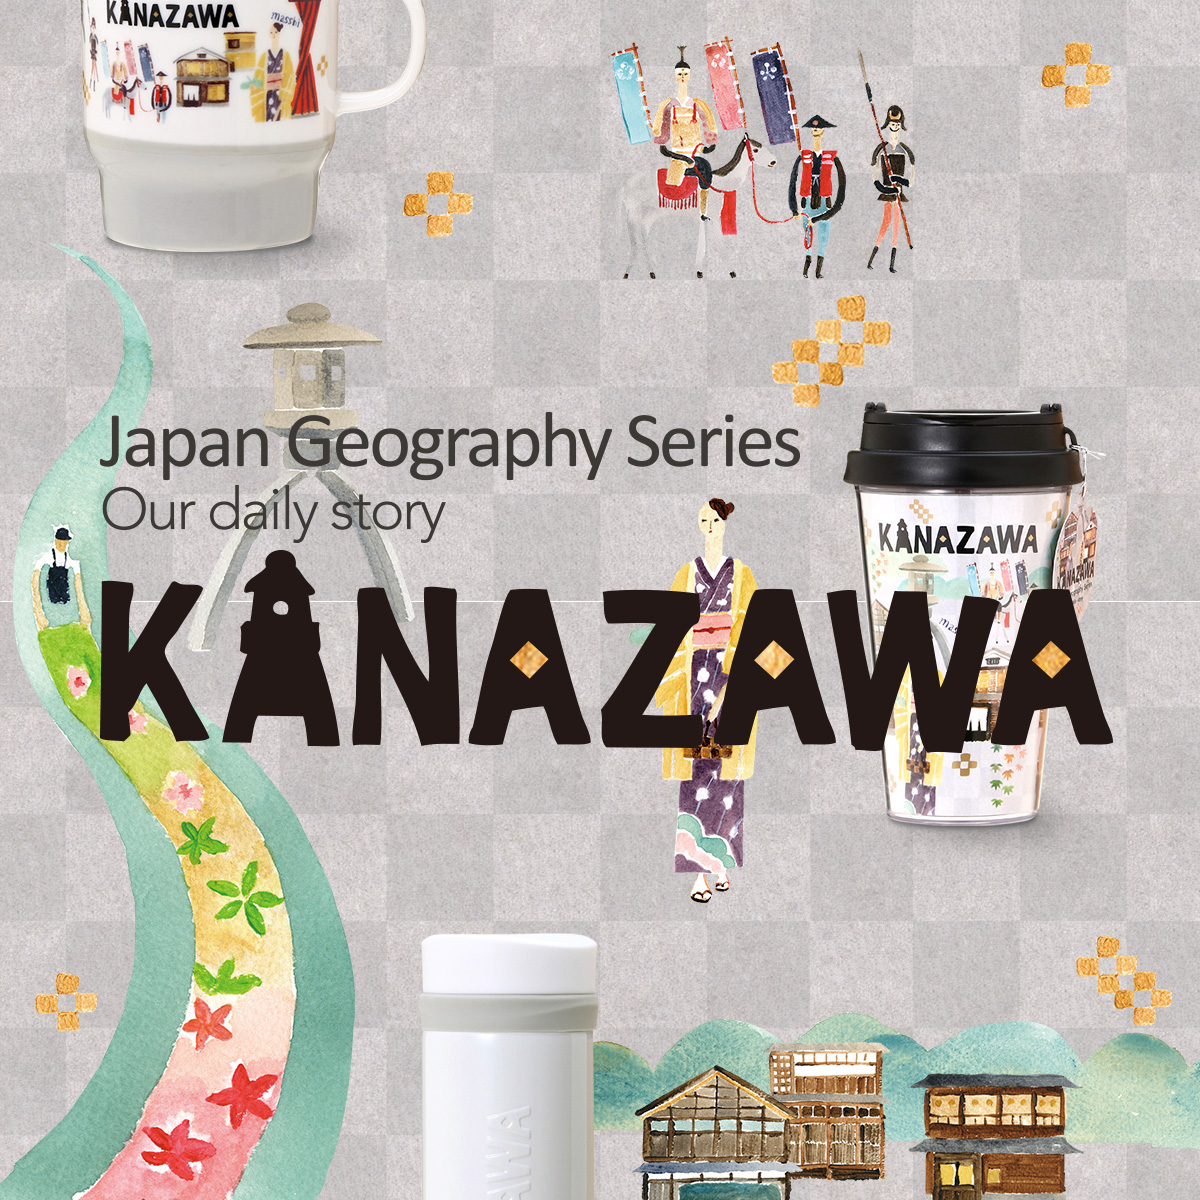 Japan Geography Series 金沢